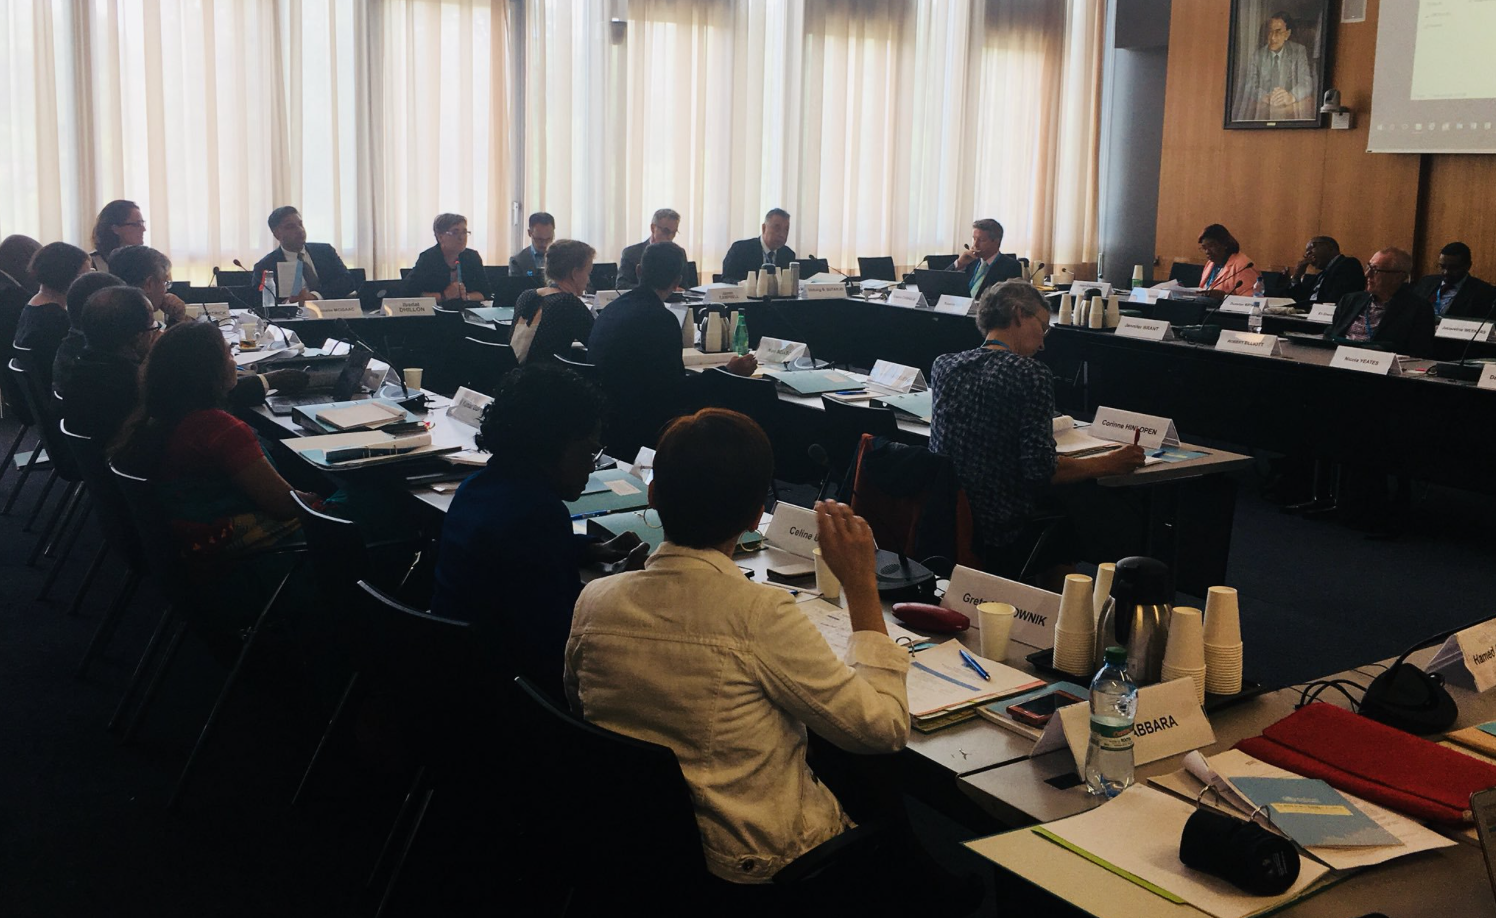 First public hearing of the Expert Advisory Group to review the WHO Global Code of Practice on International Recruitment of Health Personnel on June 18th, 2019